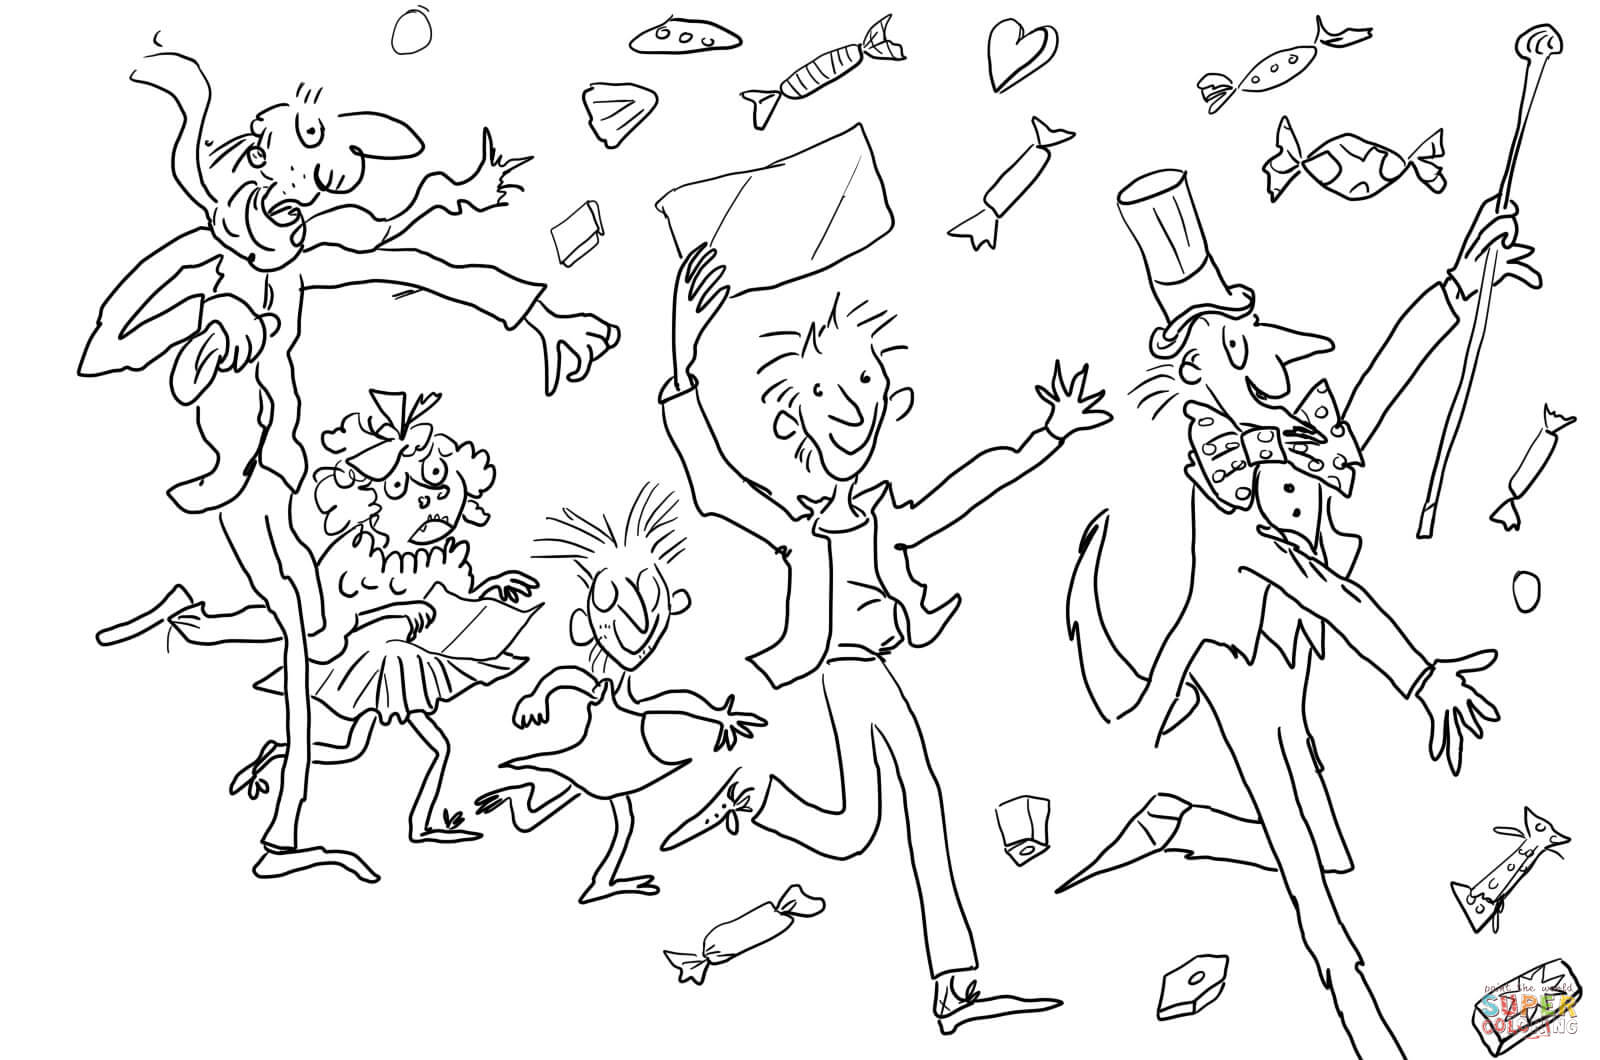 willy wonka and the chocolate factory coloring pages willy wonka and the chocolate factory coloring pages and chocolate wonka the willy coloring pages factory